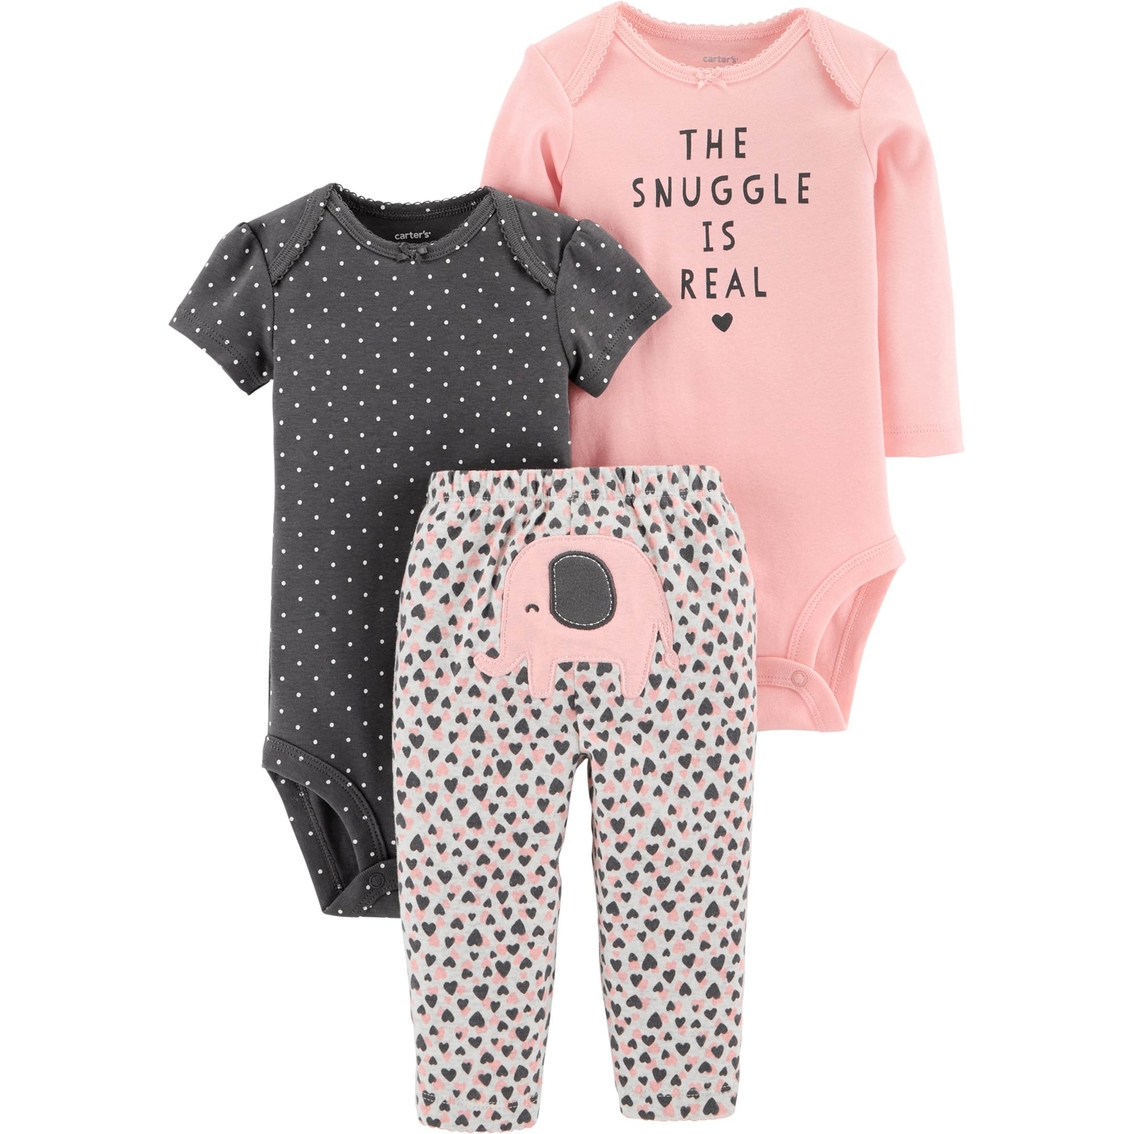 Other Newborn-5t Girls Clothes Clothing, Shoes & Accessories 0-3 Month Patterned Slogan Long Sleeve Bodysuits